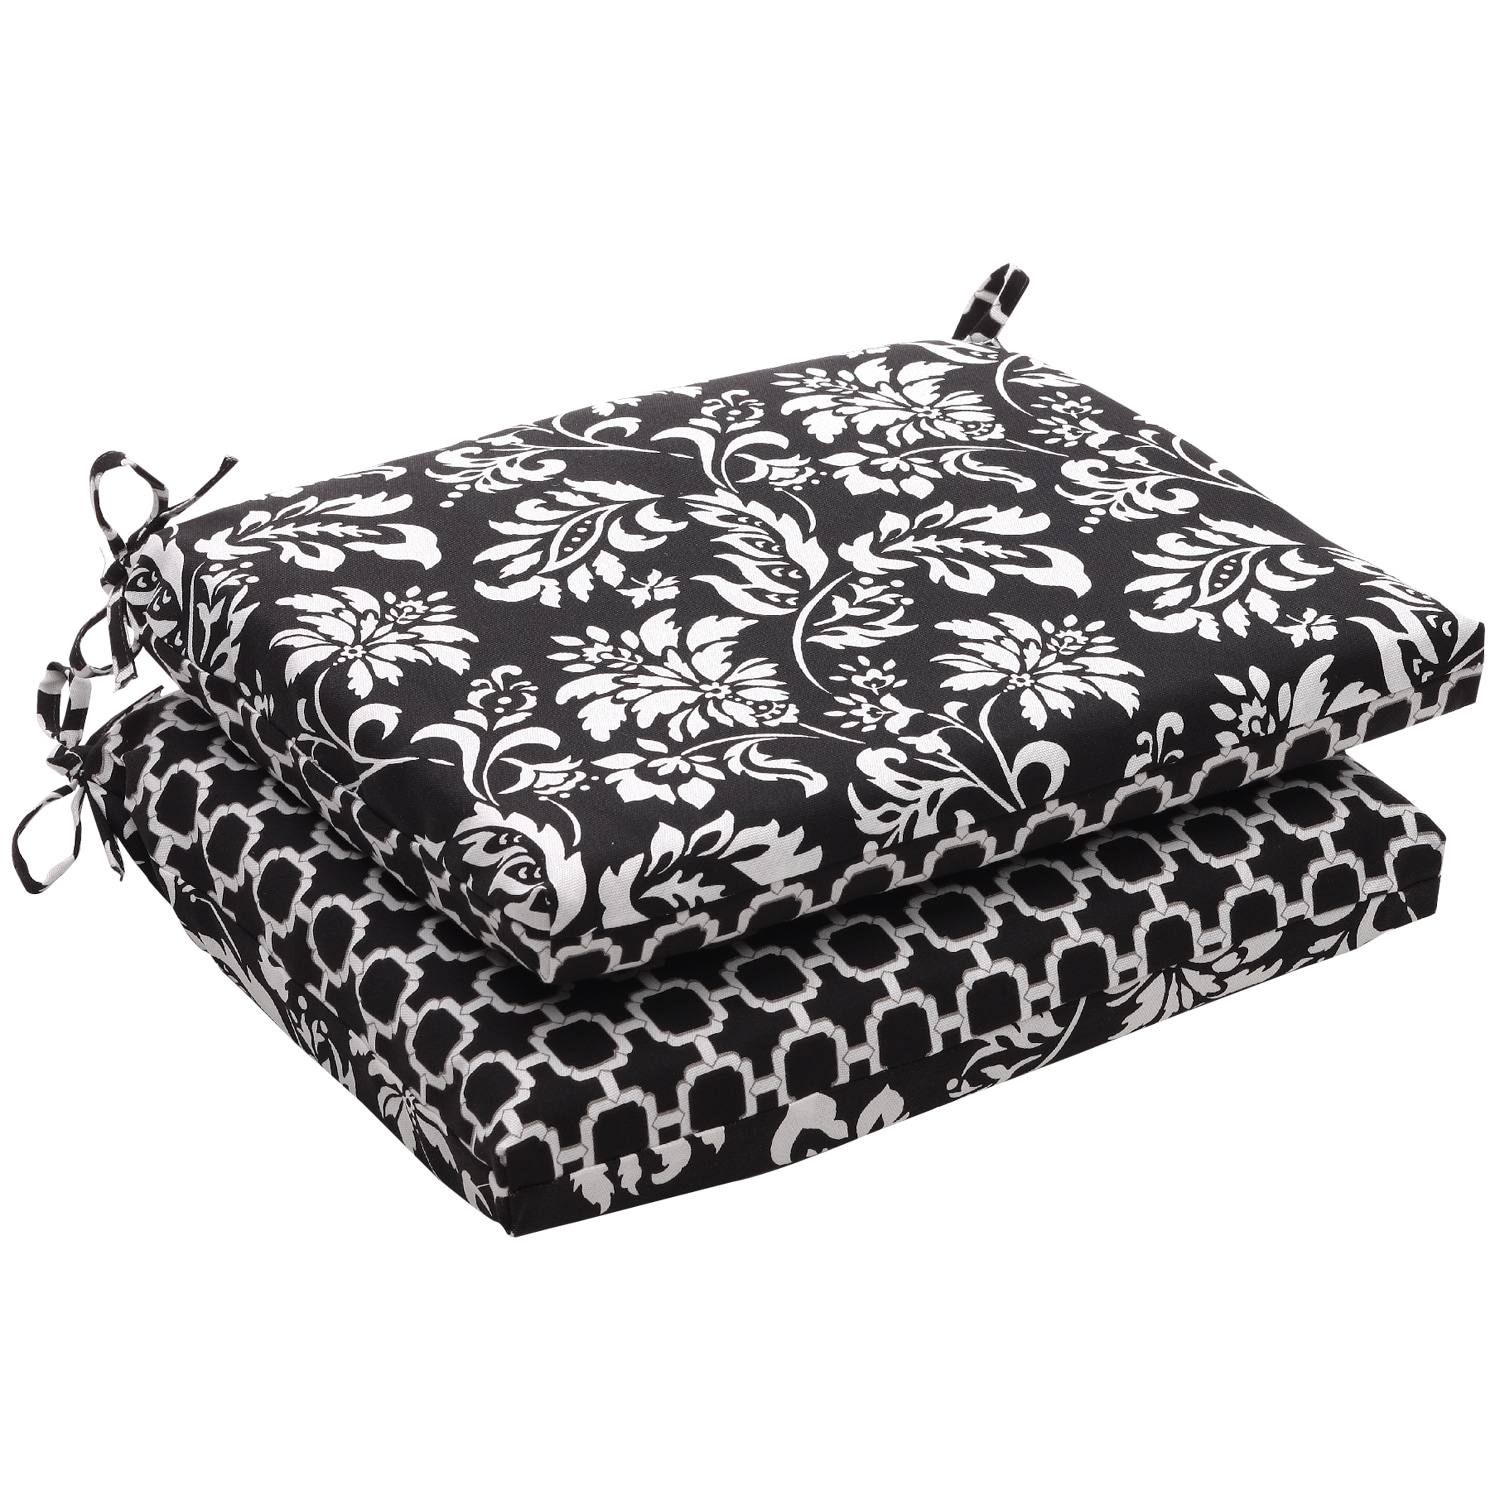 Patio Furniture Cushions White: Outdoor Black And White Floral Squared Reversible Seat